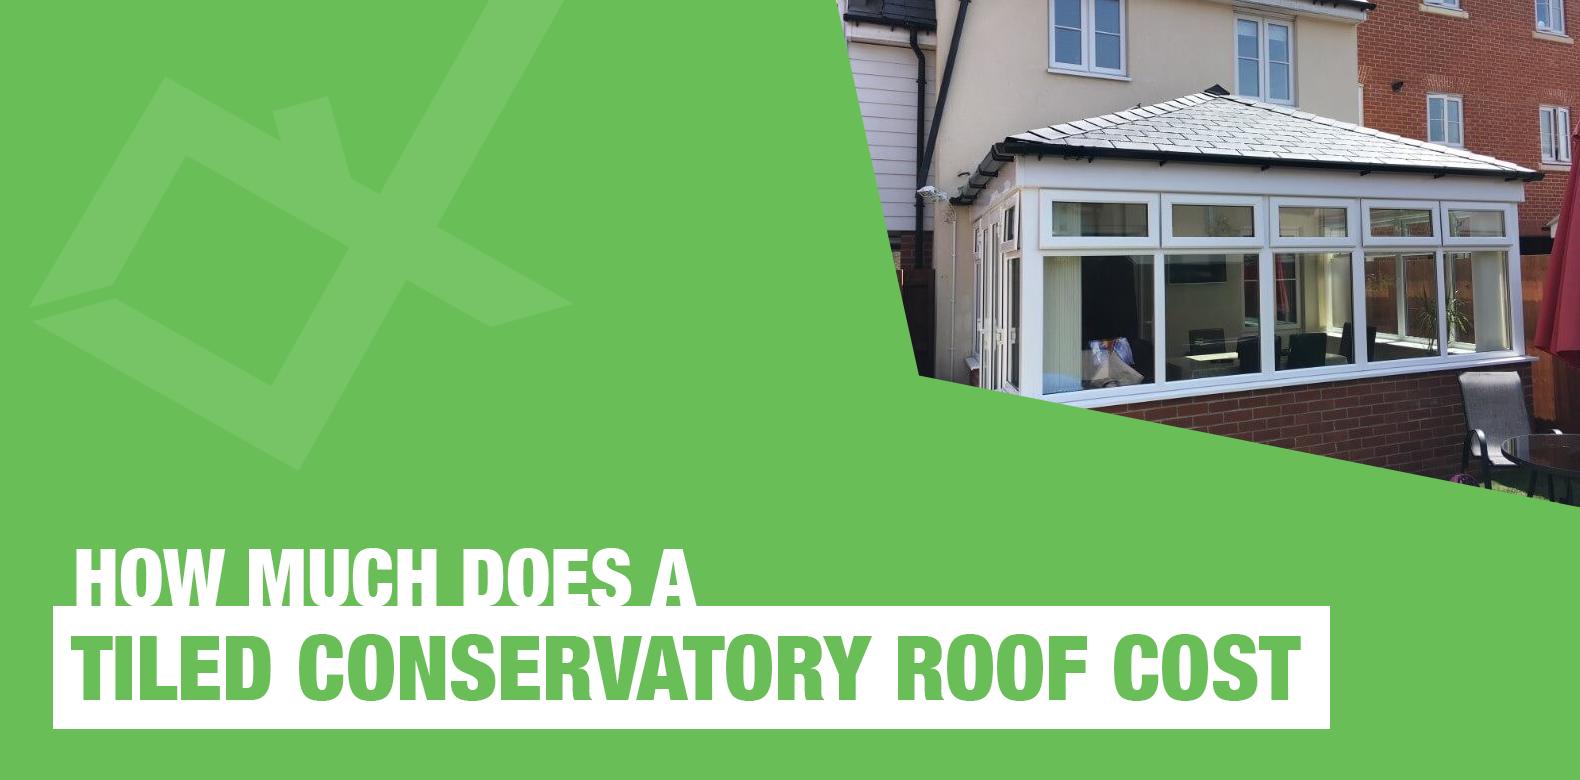 How Much Does It Cost to Tile a Conservatory Roof? | Roofing Megastore